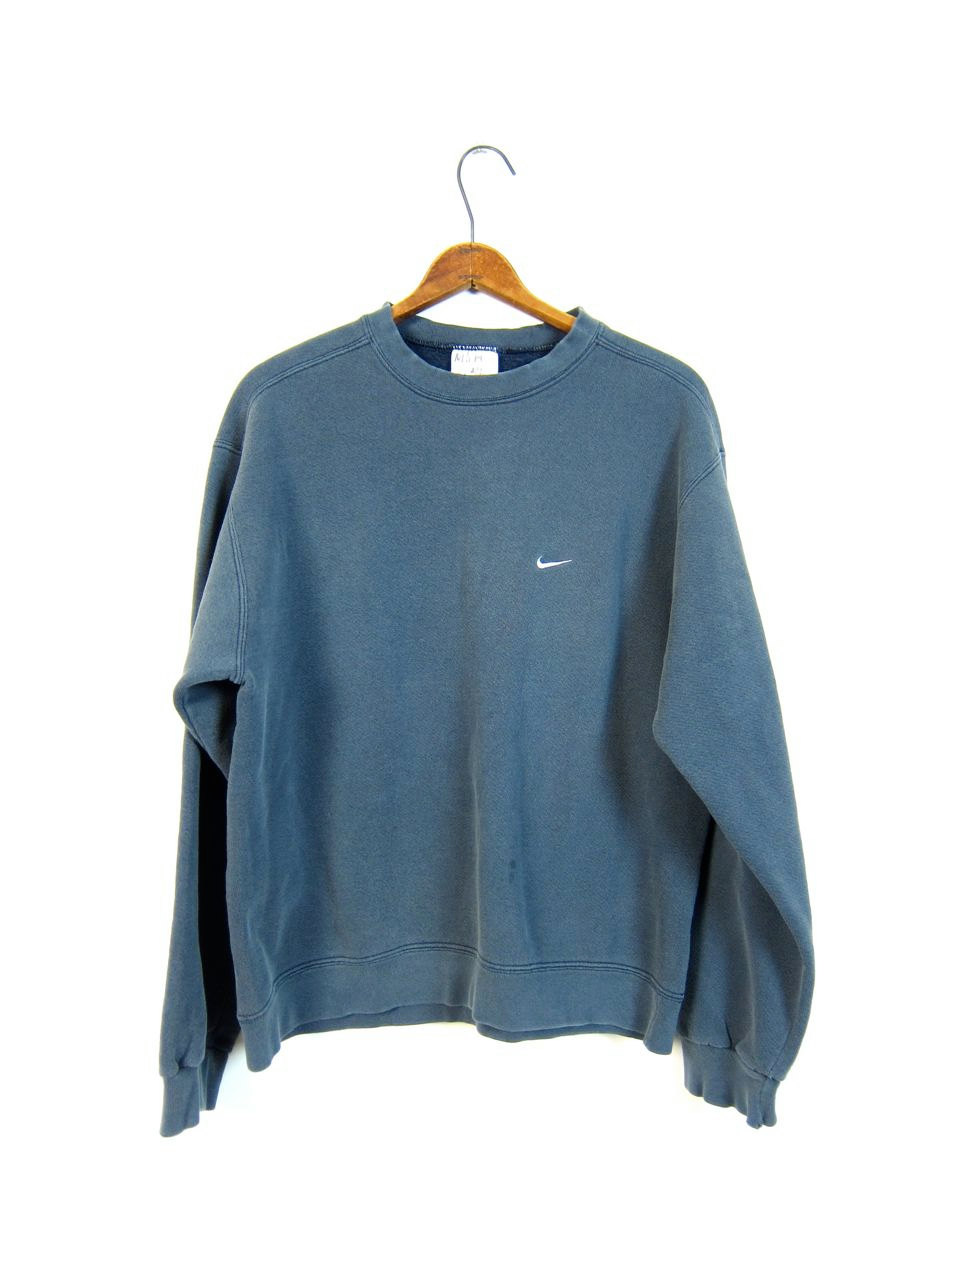 nett Faded Blue Nike Sweatshirt Washed Out Distressed